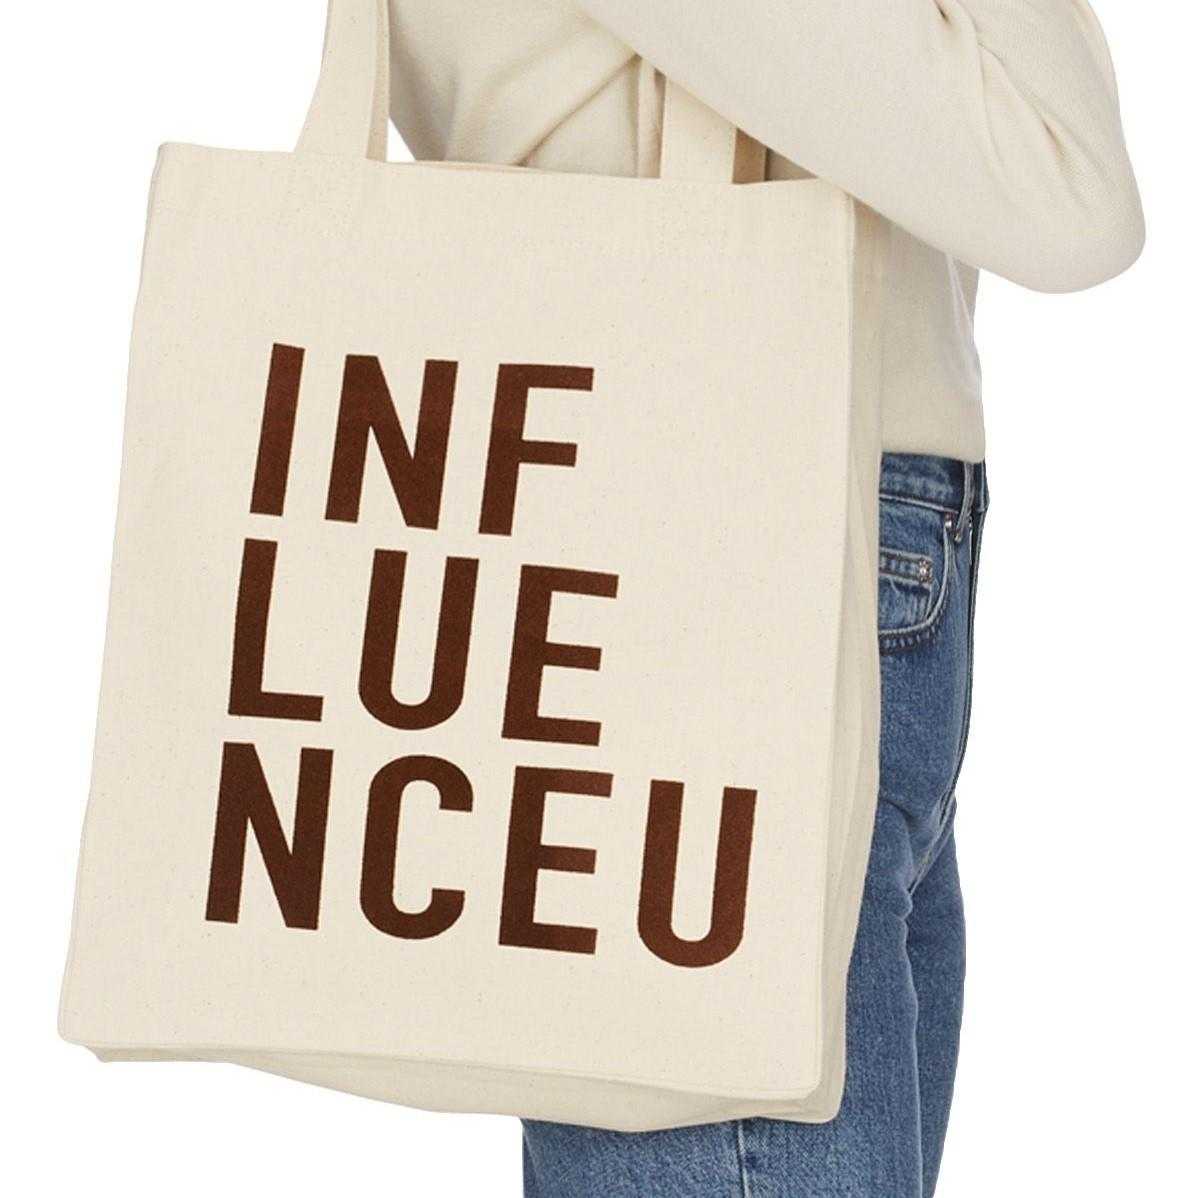 Influence U: 20% OFF Sitewide